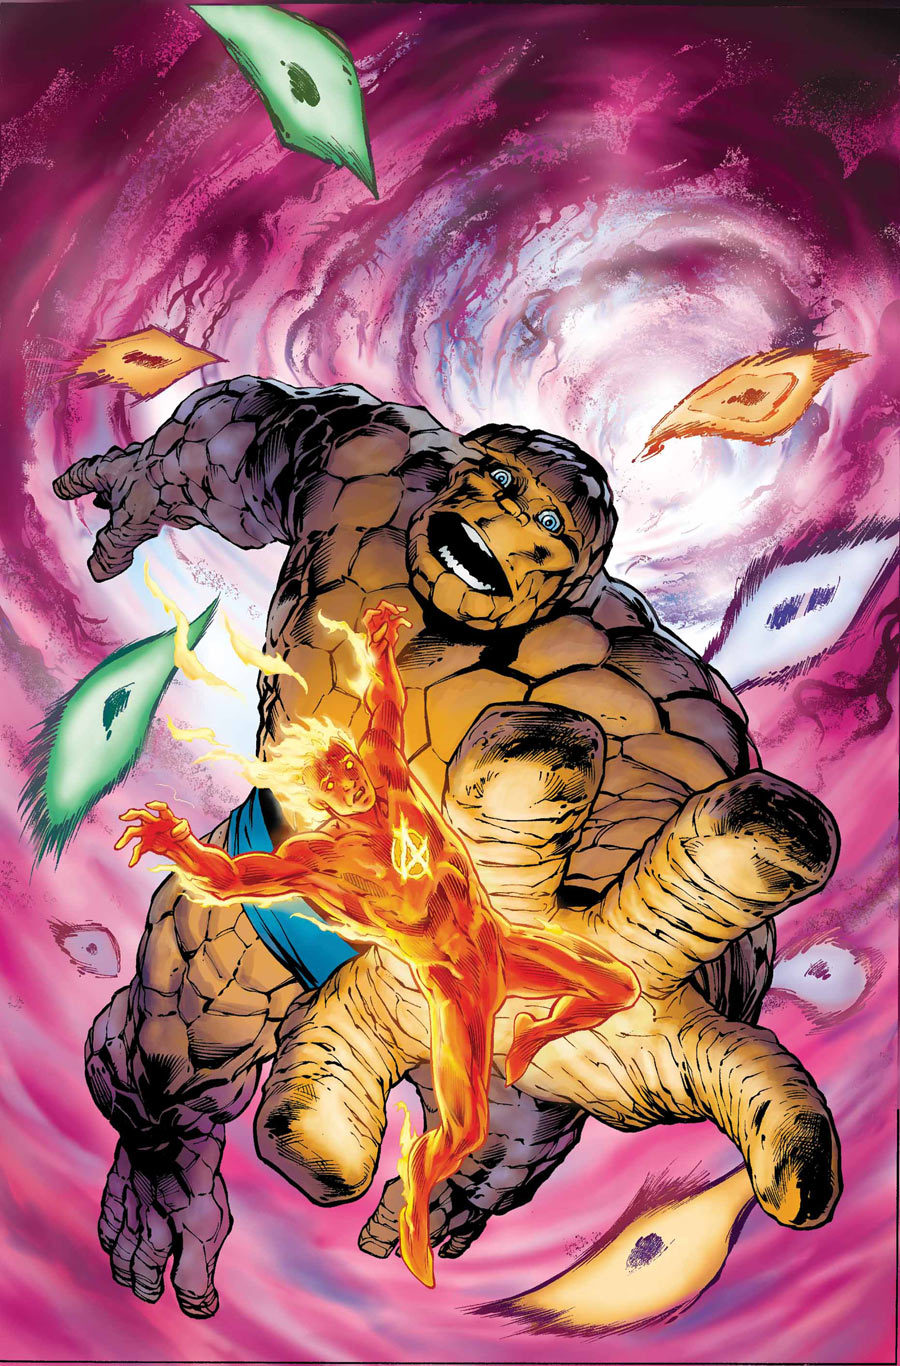 Marvel comics for July 2012: this is the cover for Fantastic Four Annual #33, drawn by Alan Davis. This is of particular interest to me because Davis is writing and drawing this book, and it will see the return of the ClanDestine, characters from one of my favourite comic books.